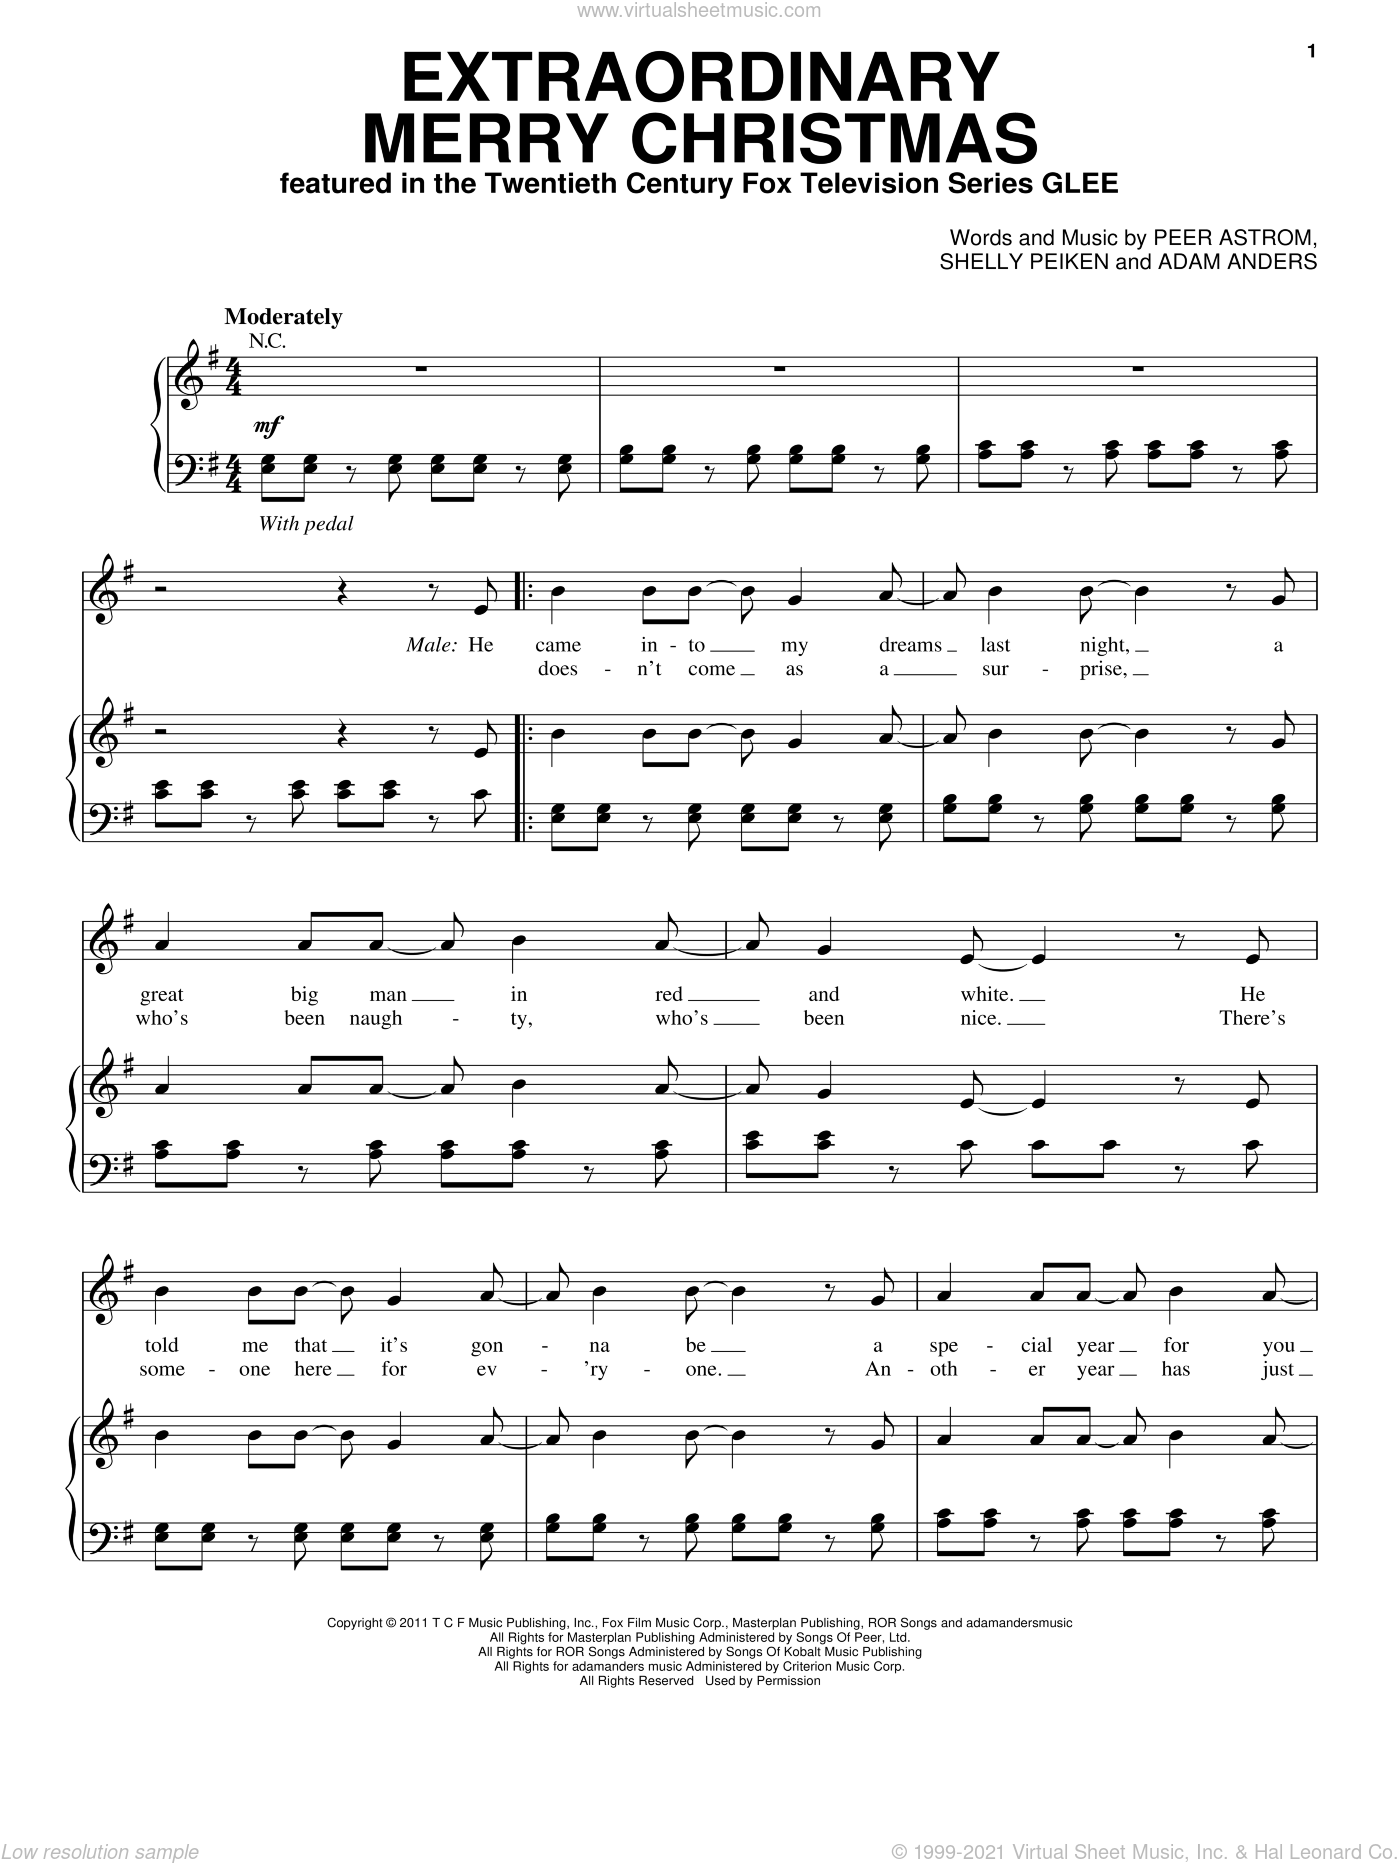 Extraordinary Merry Christmas sheet music for voice, piano or guitar by Shelly Peiken